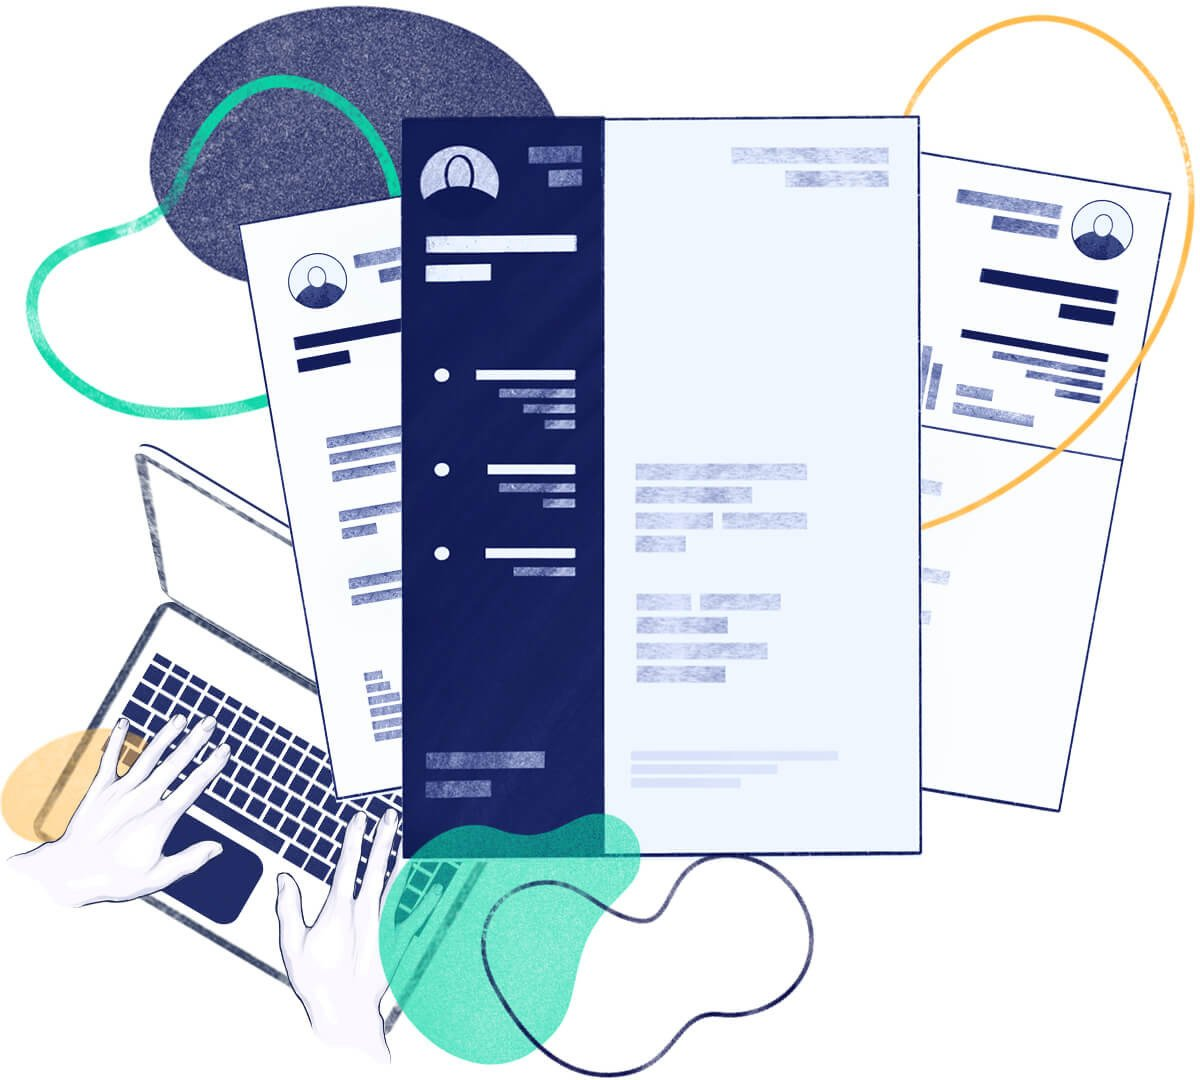 Network Engineer CV—Examples and 25+ Writing Tips